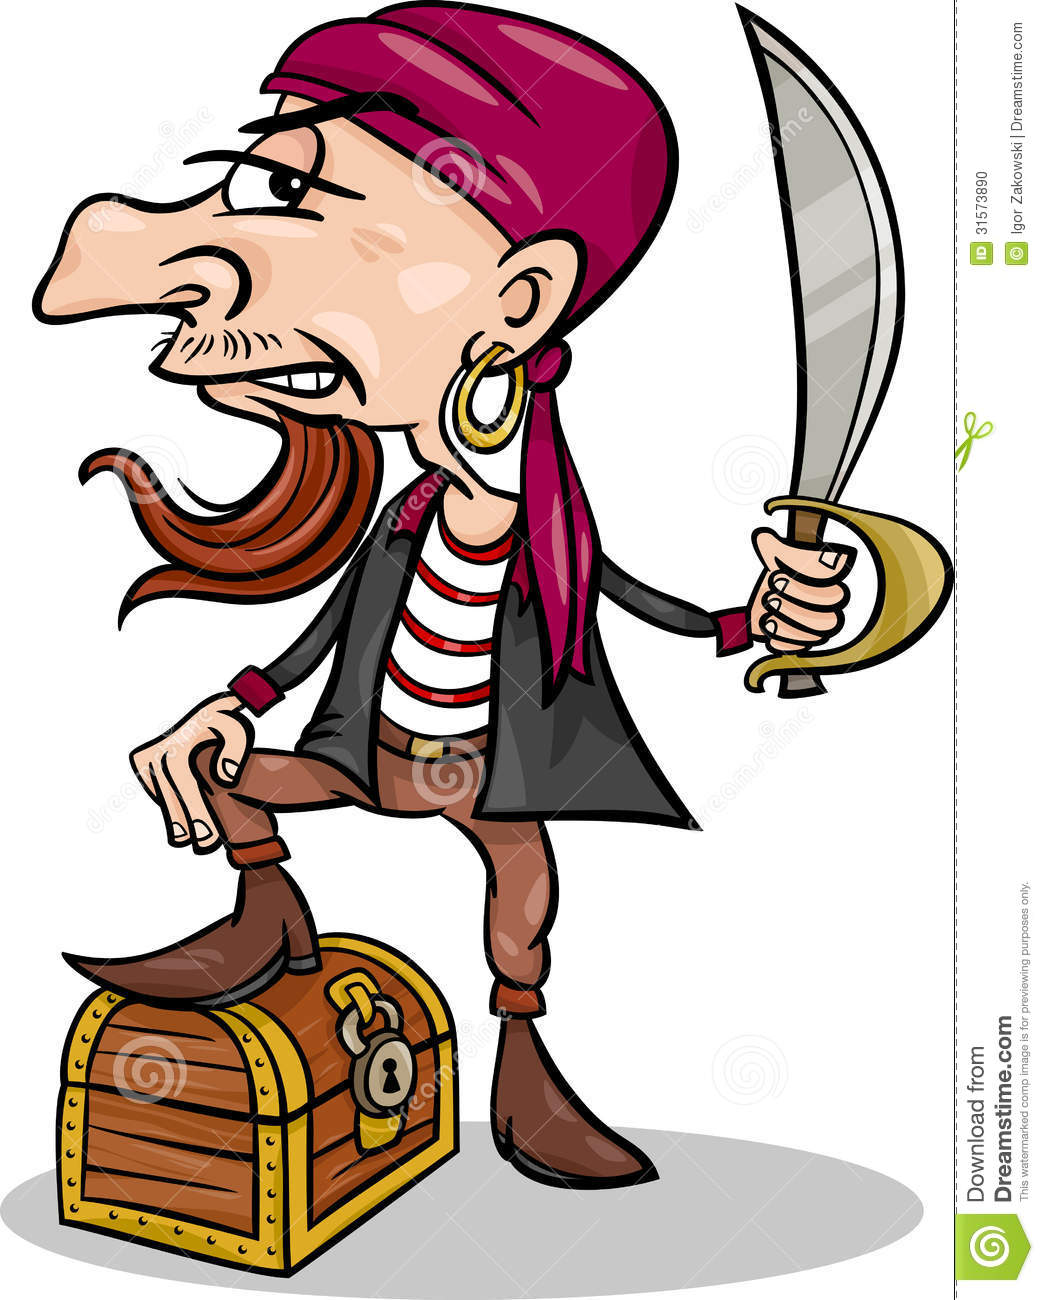 Cartoon Illustration of Funny Pirate or Corsair with Sword and ...